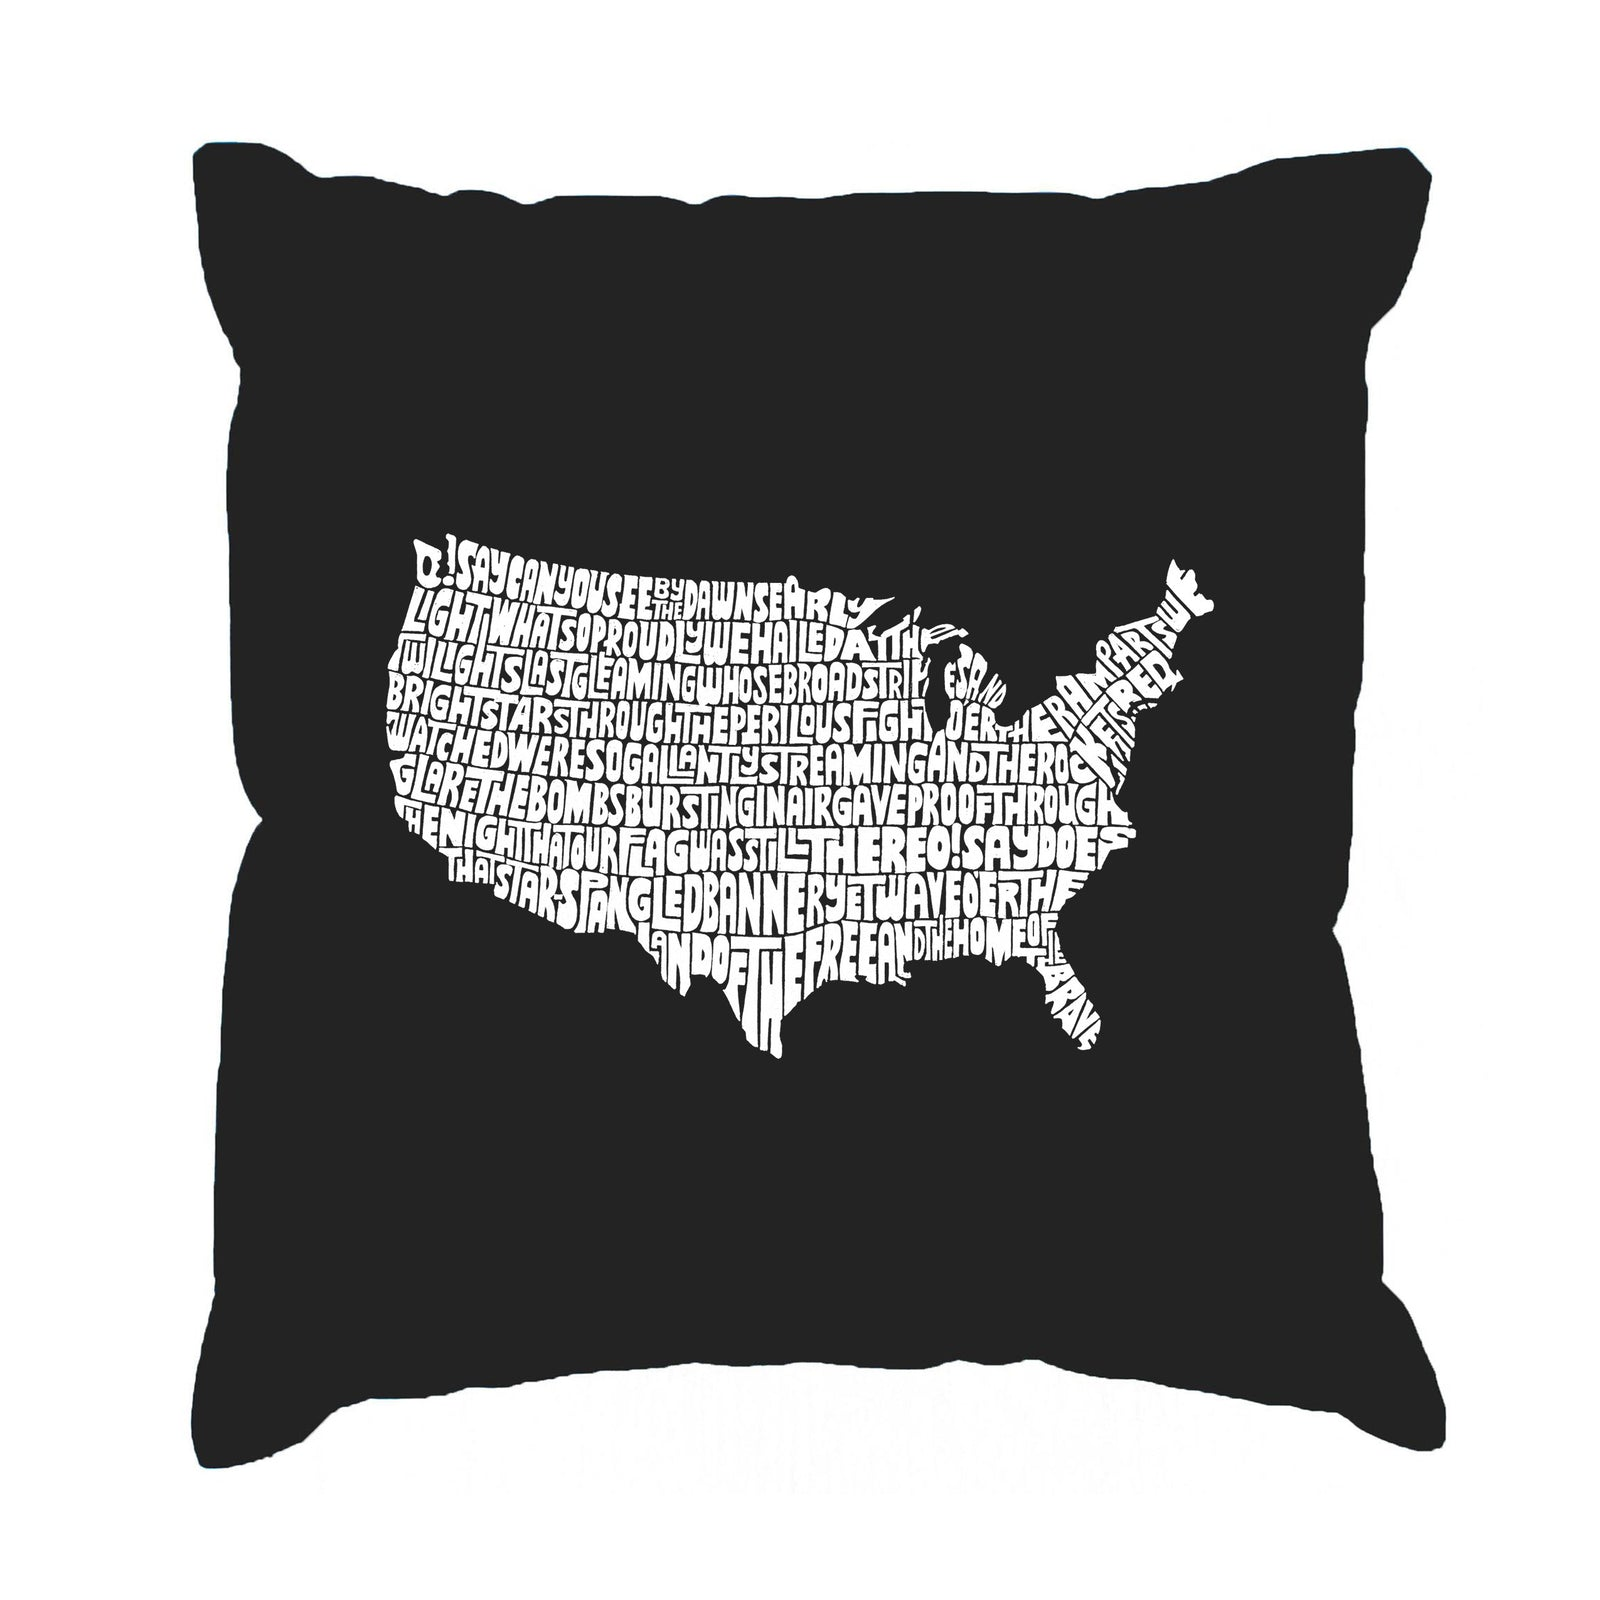 Throw Pillow Cover - THE STAR SPANGLED BANNER